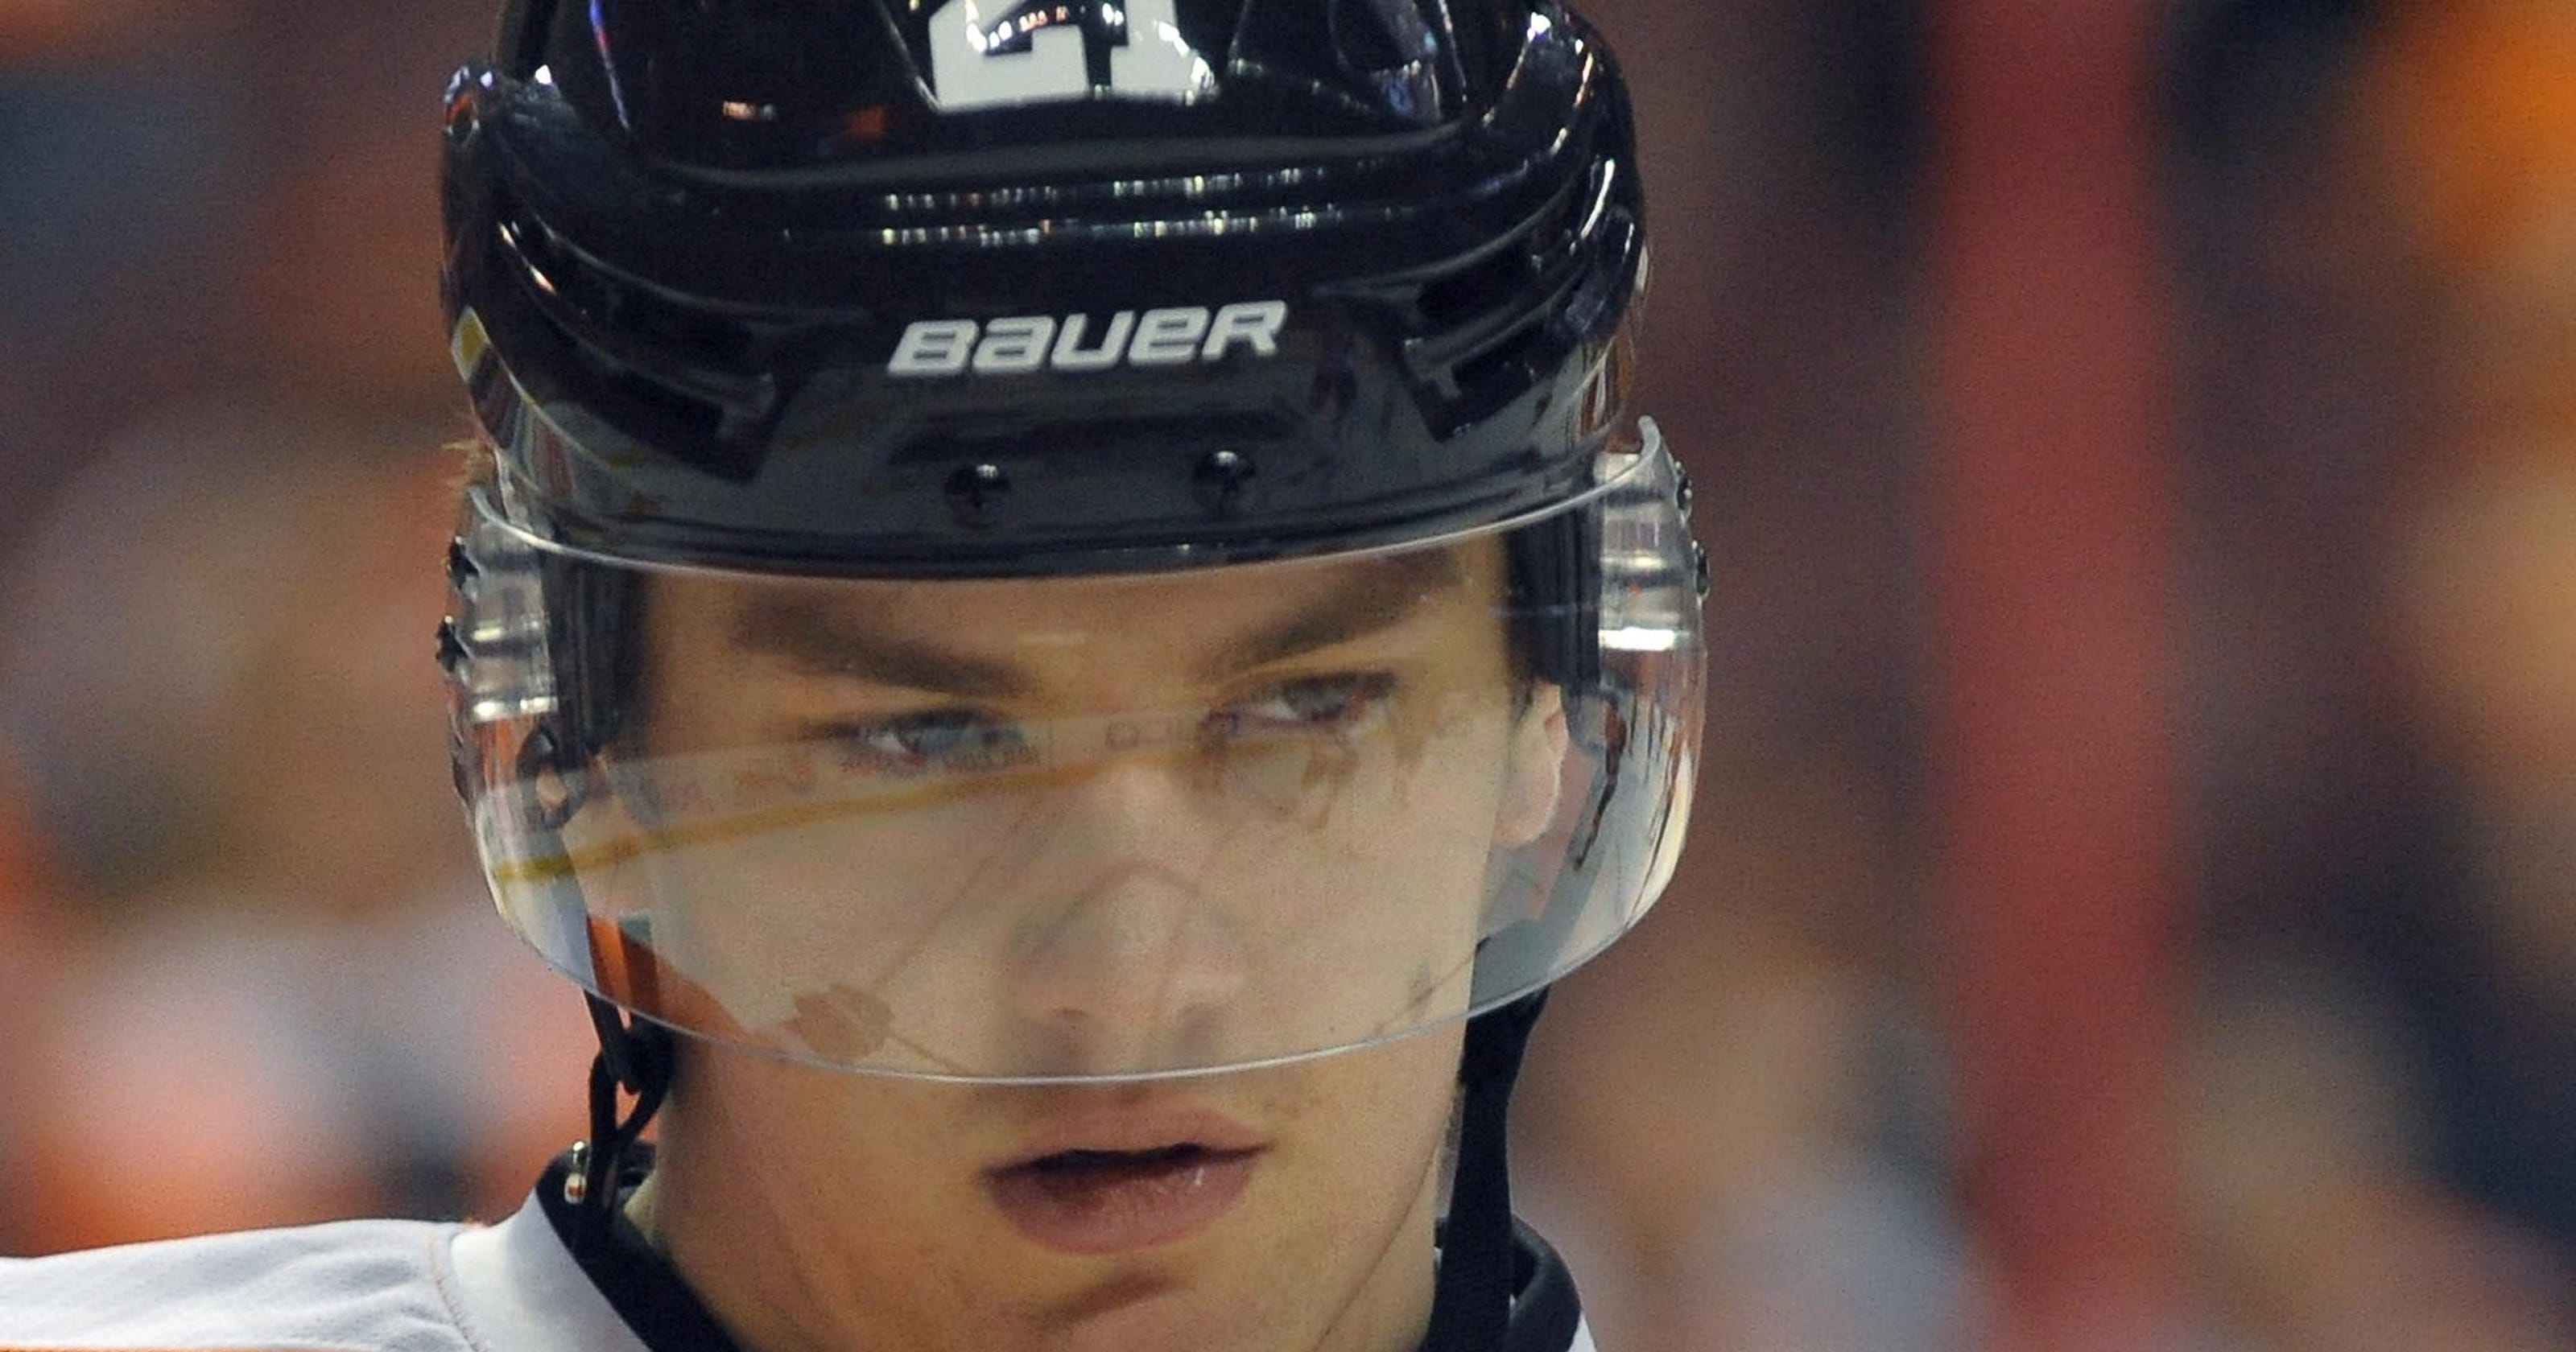 Nhl Charity Game Will Benefit Superstorm Sandy Victims